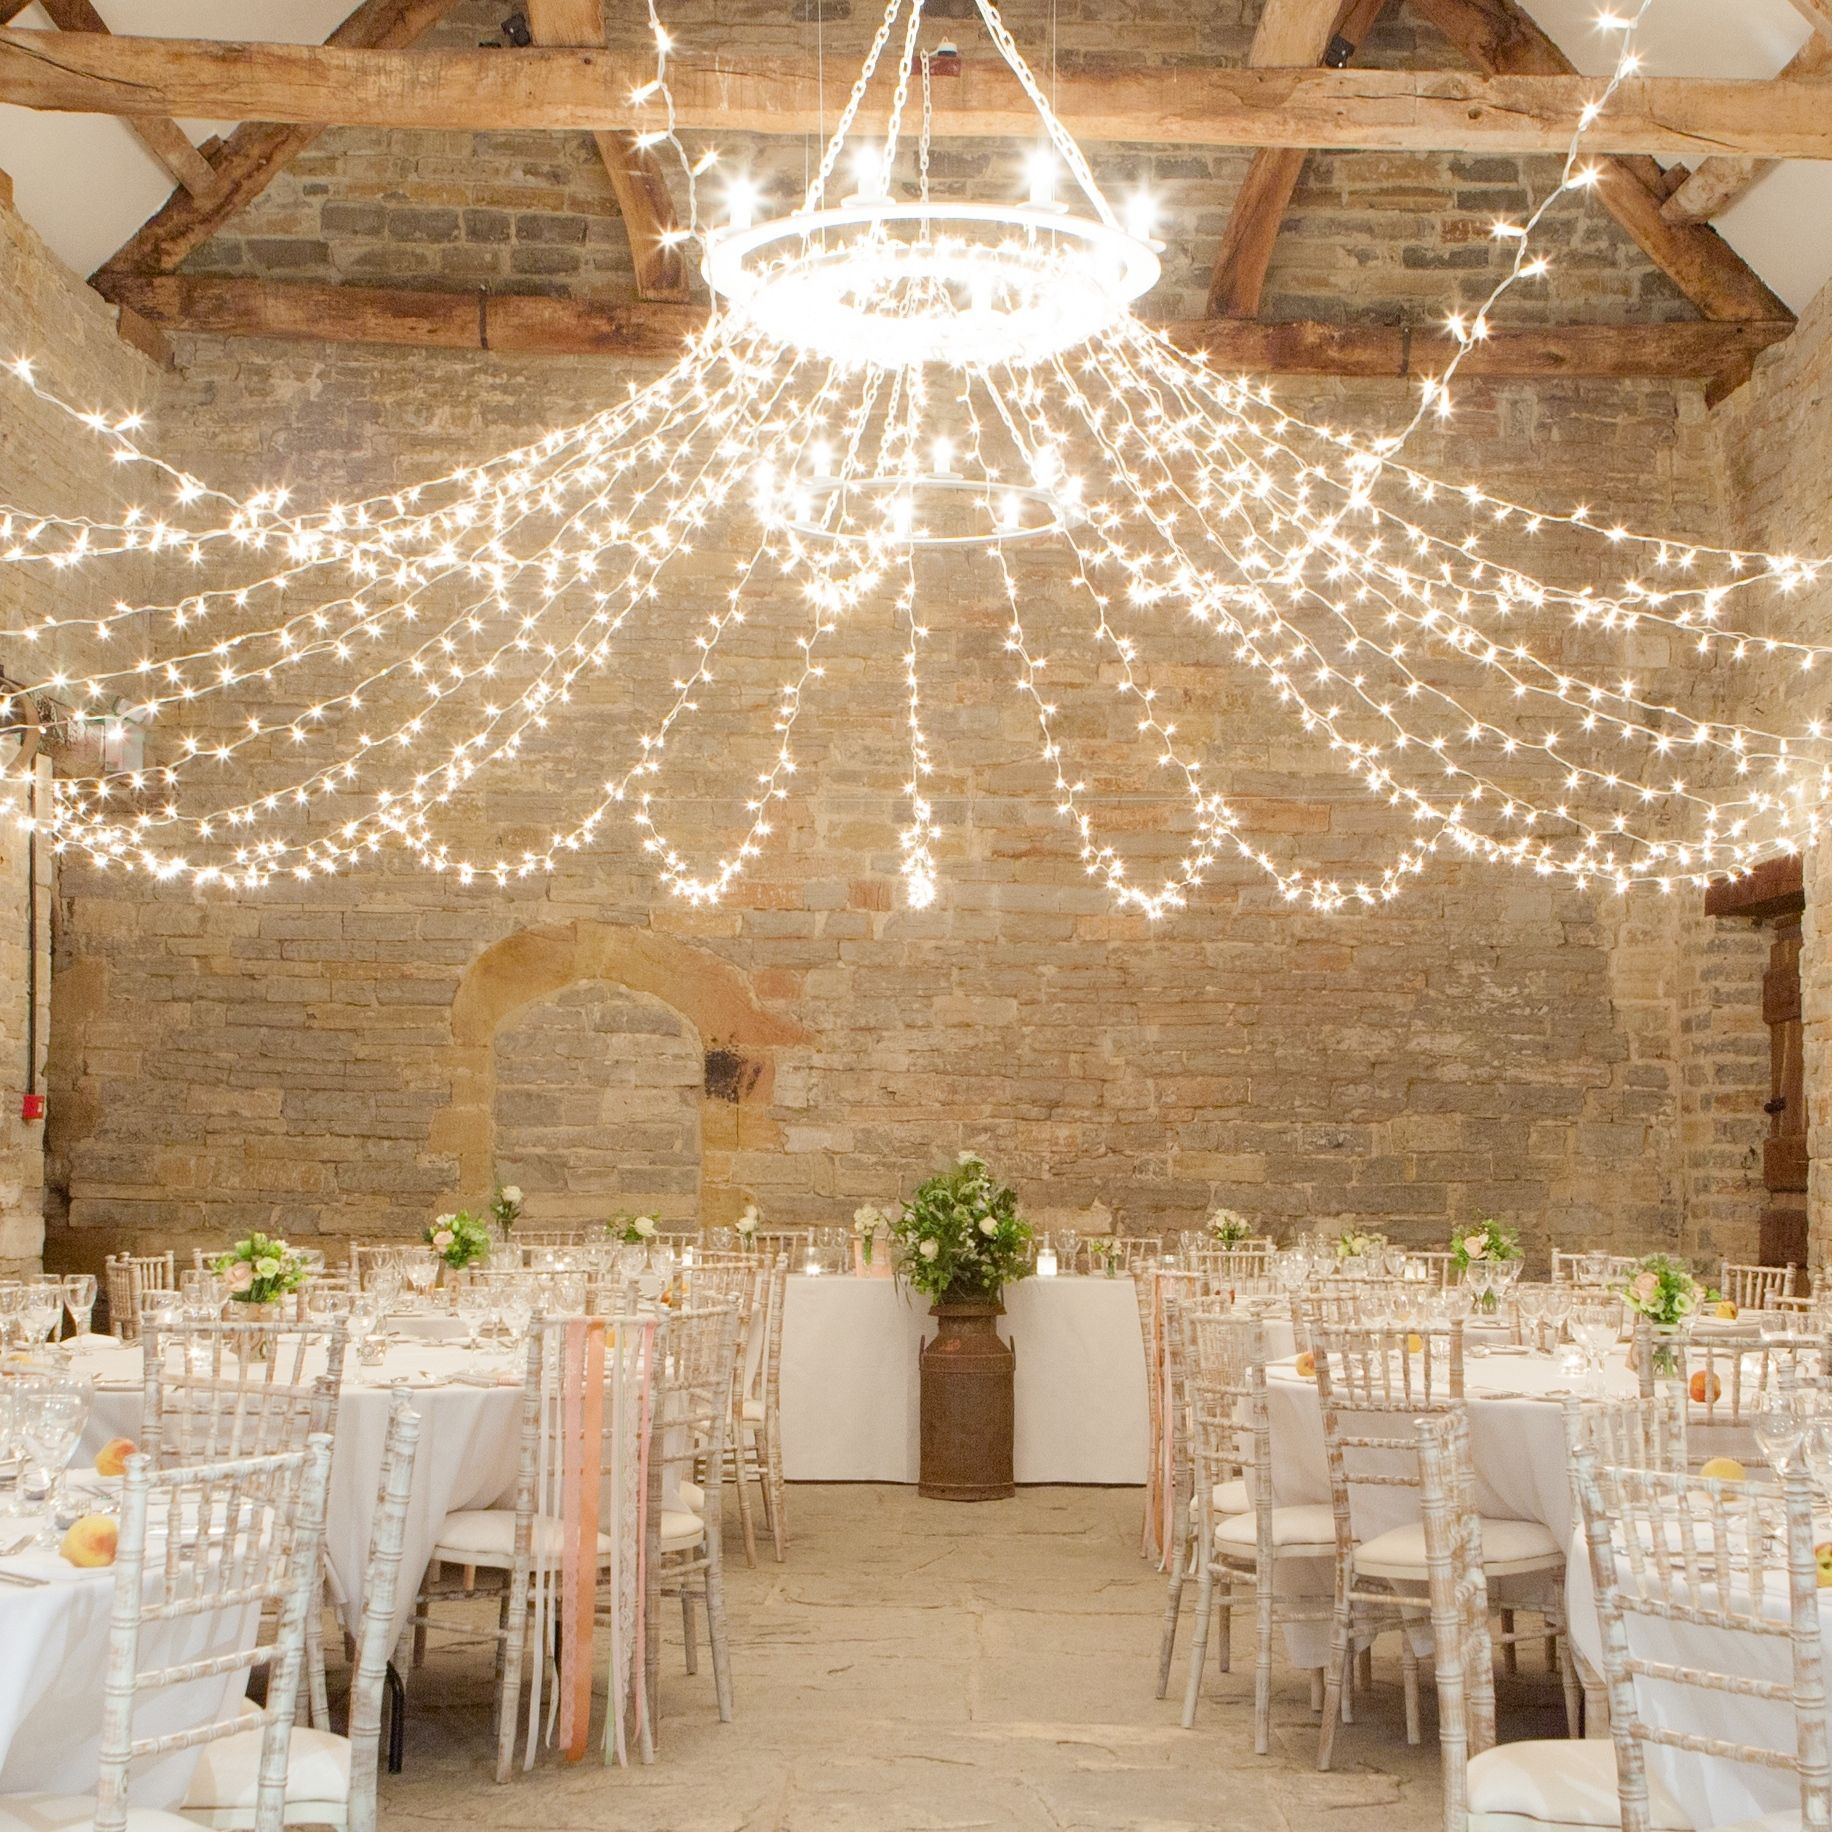 Elegant Rustic Wedding Ideas: If You Are A Rustic Romance Kind Of Boy And Girl Then Look